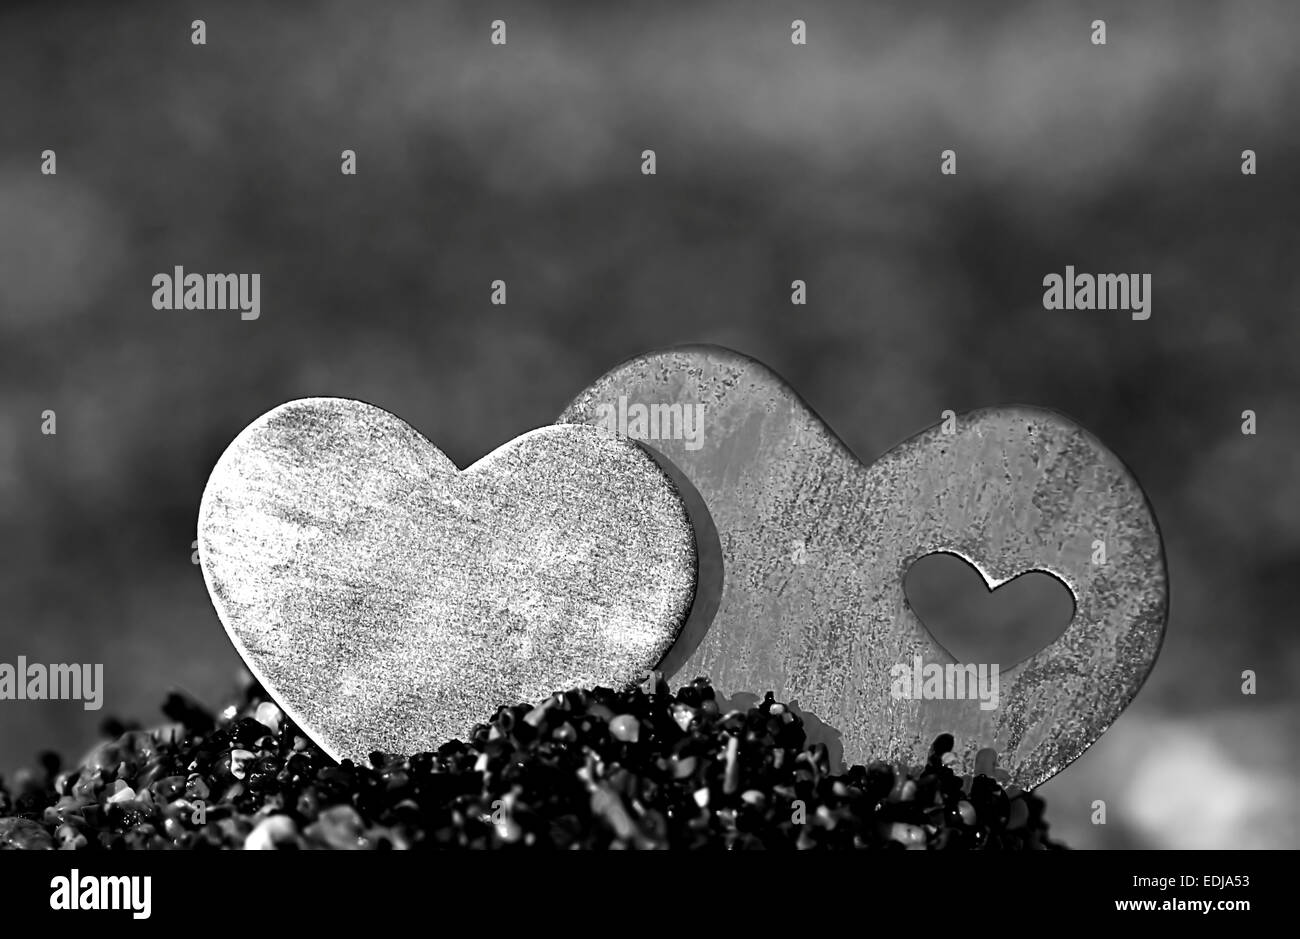 Two bright beautiful metal hearts are placed on top of a small sand hill. The background is diffuse beach and waves. Stock Photo